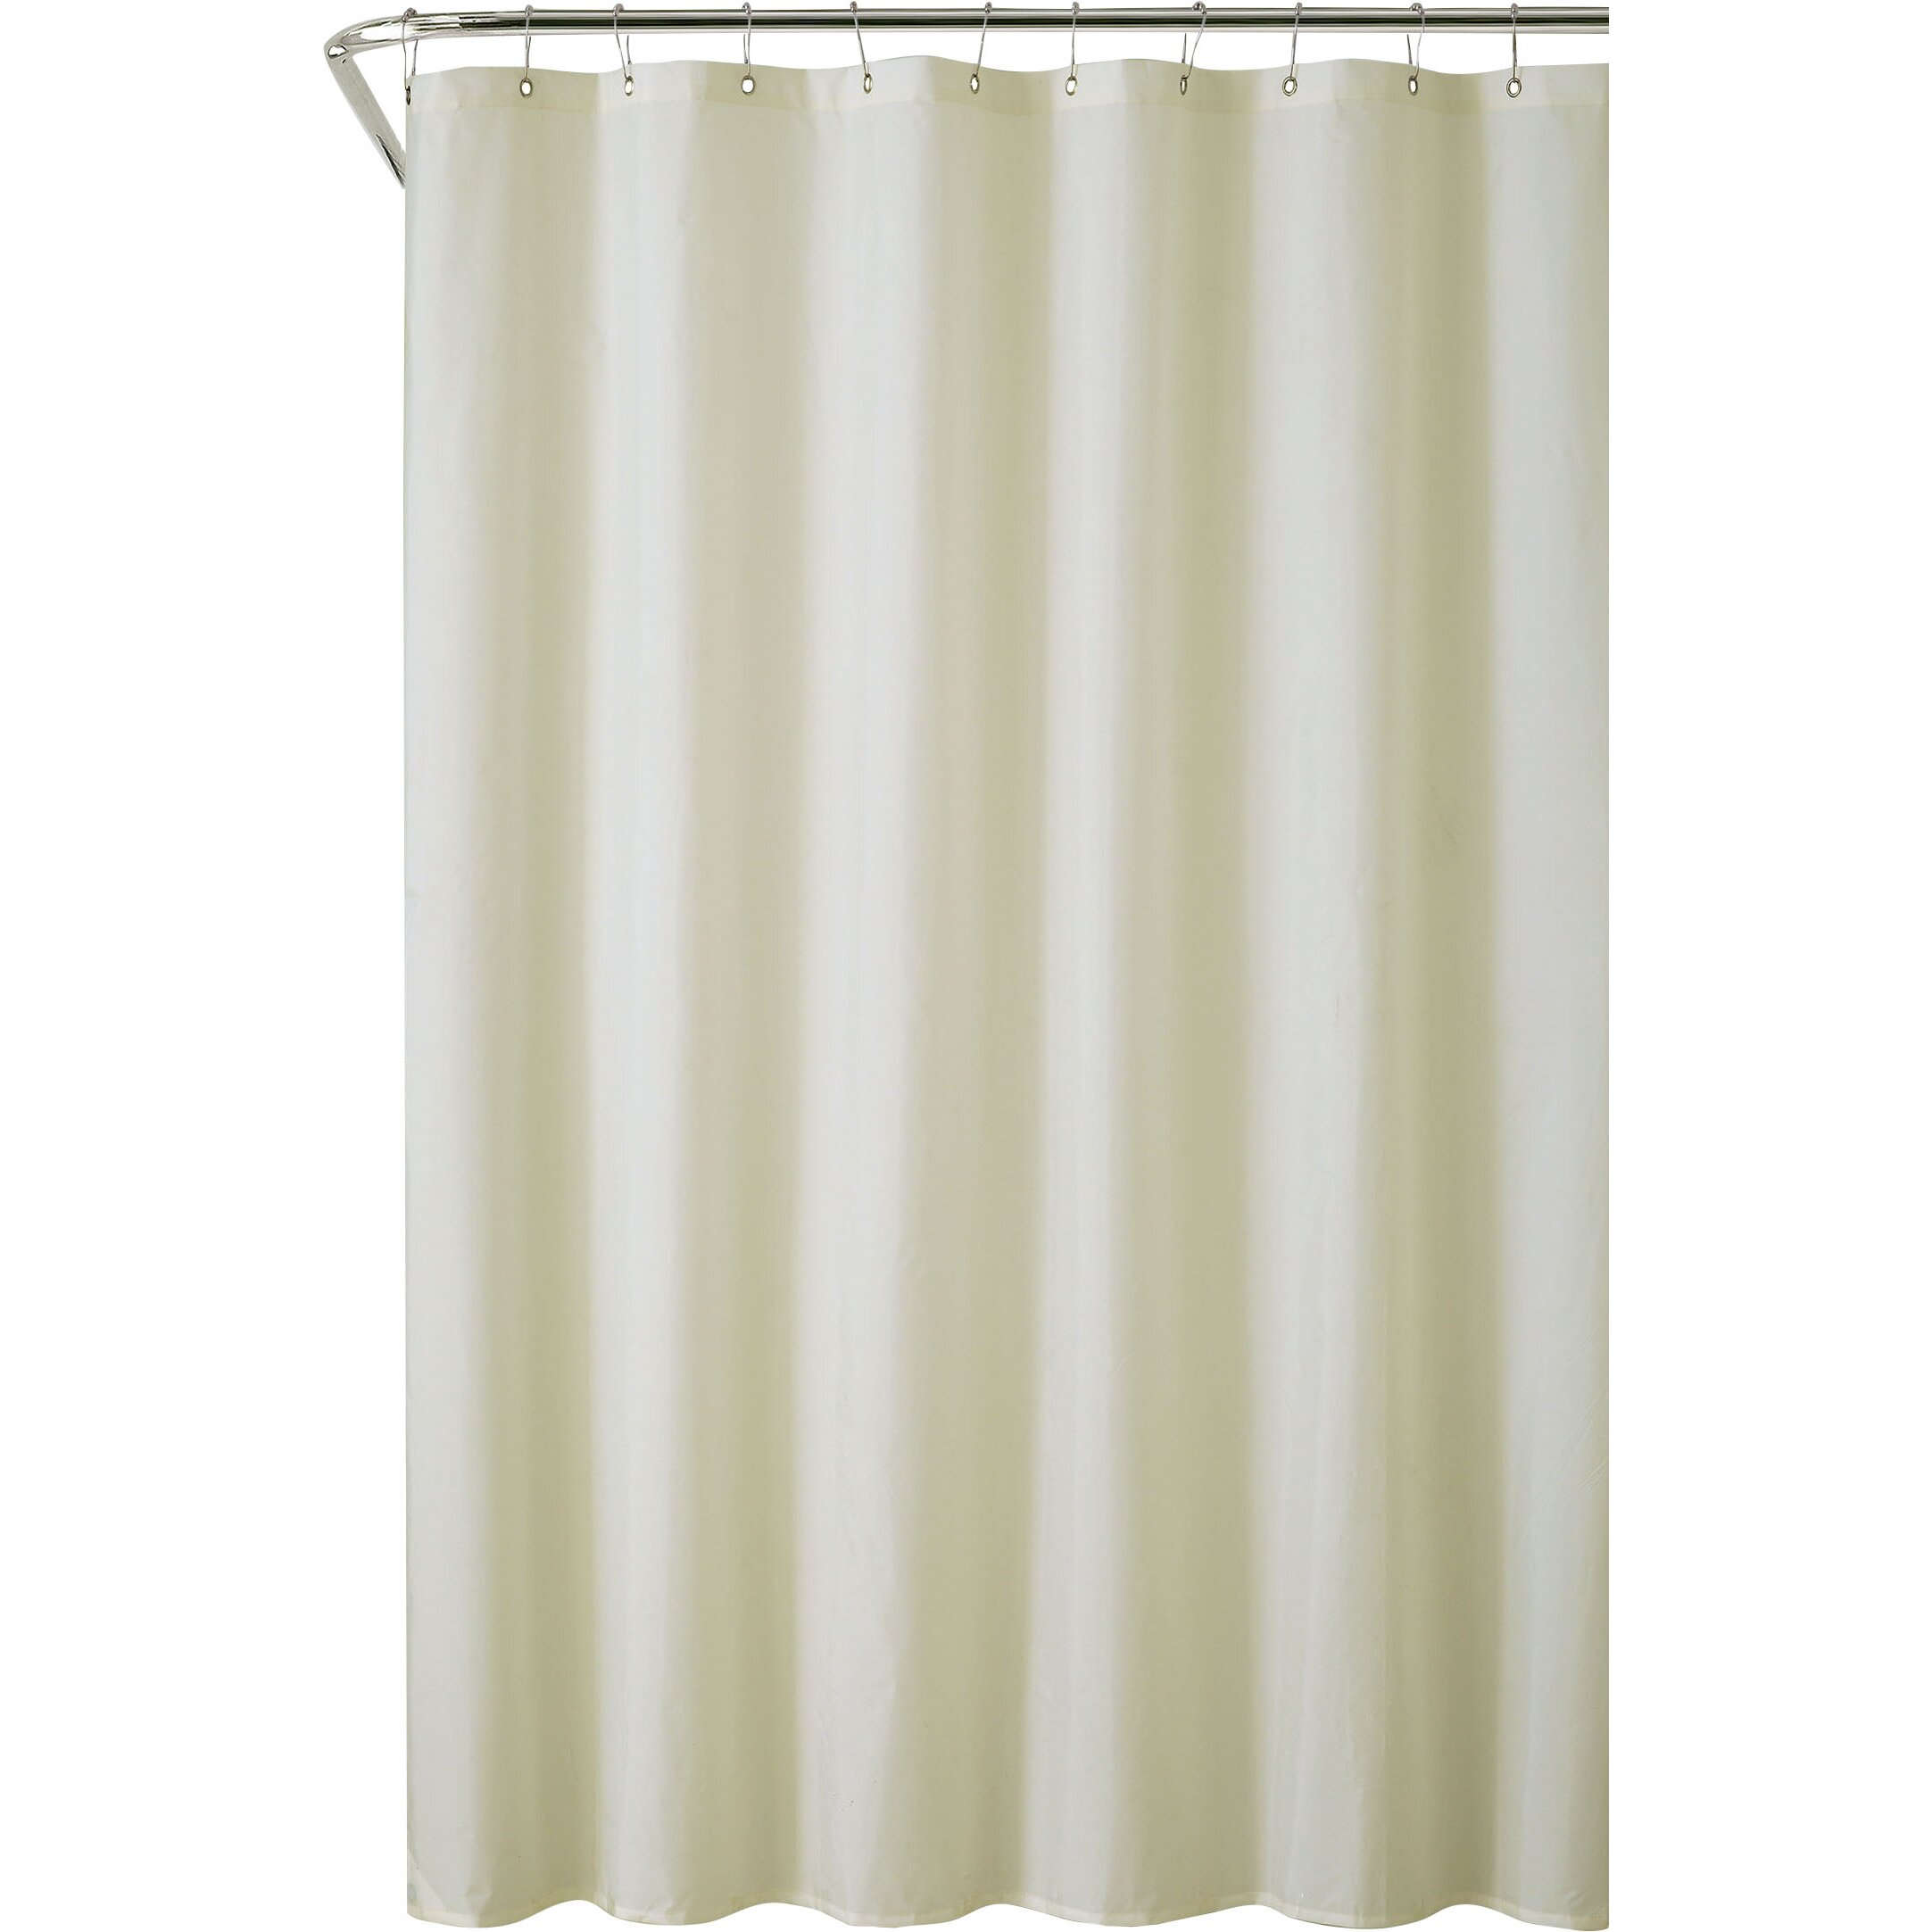 Symple Stuff Vinyl Water Proof Shower Curtain Liner